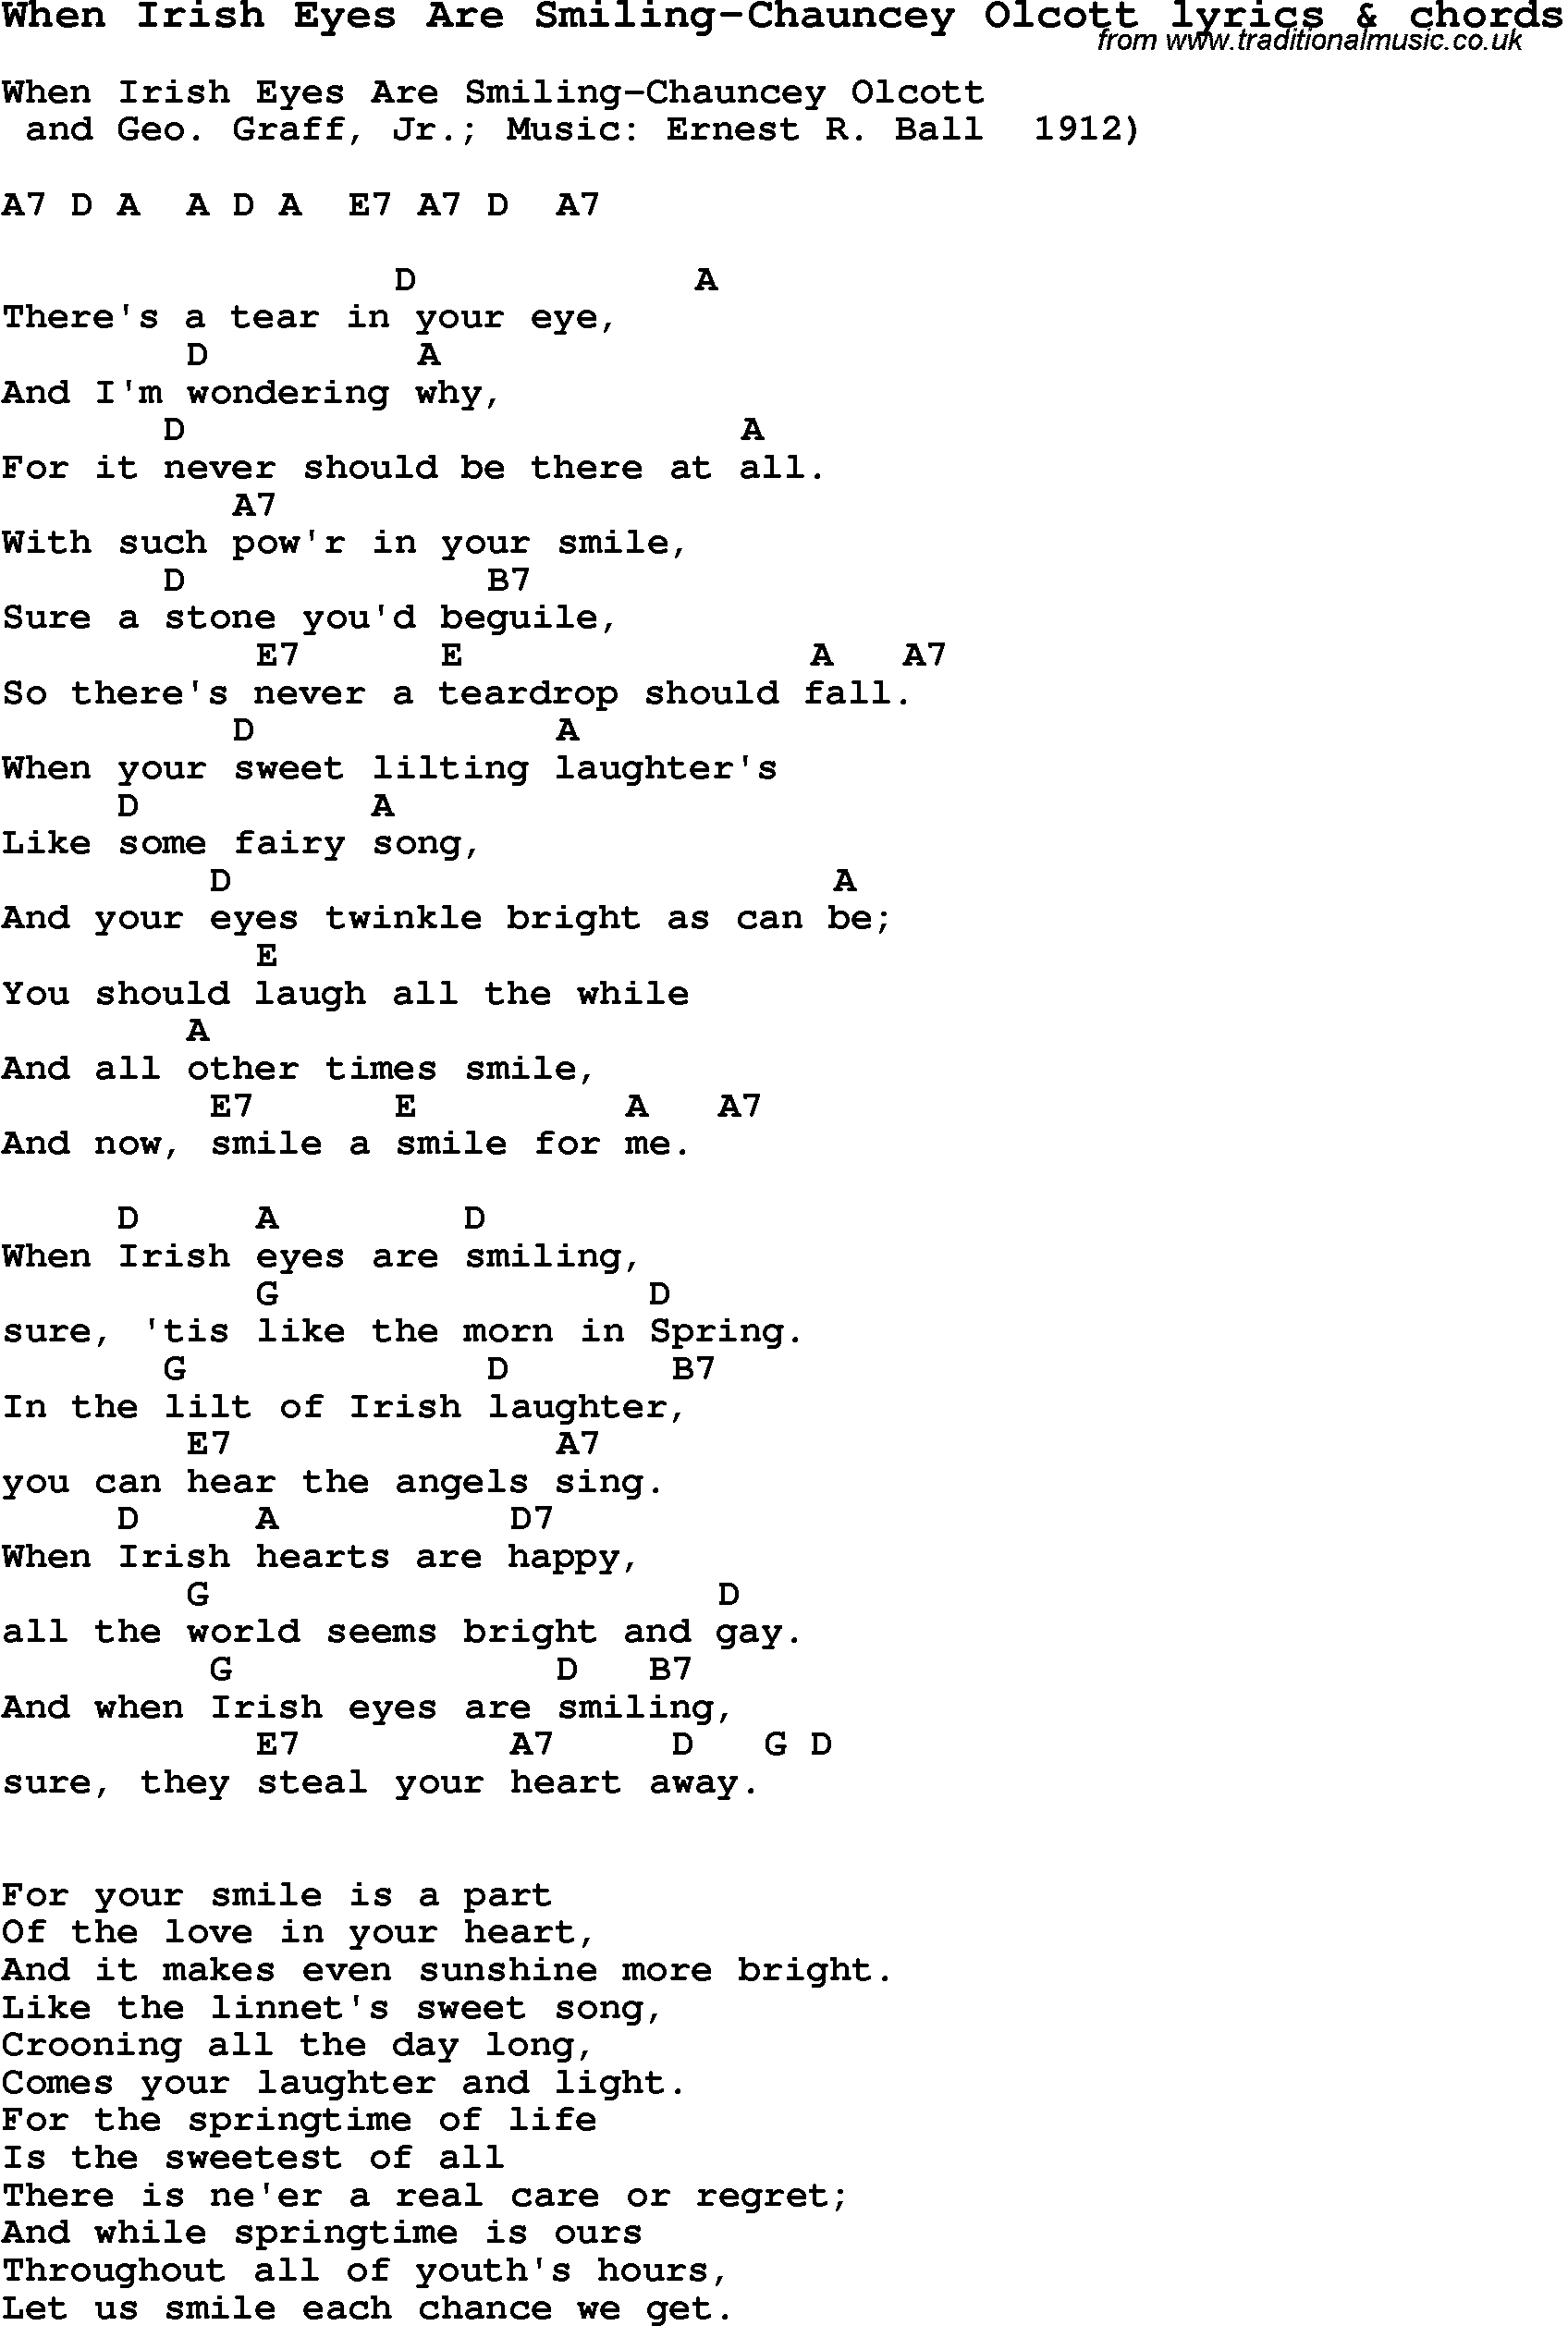 Love song lyrics for when irish eyes are smiling chauncey olcott love song lyrics for when irish eyes are smiling chauncey olcott with chords for hexwebz Image collections